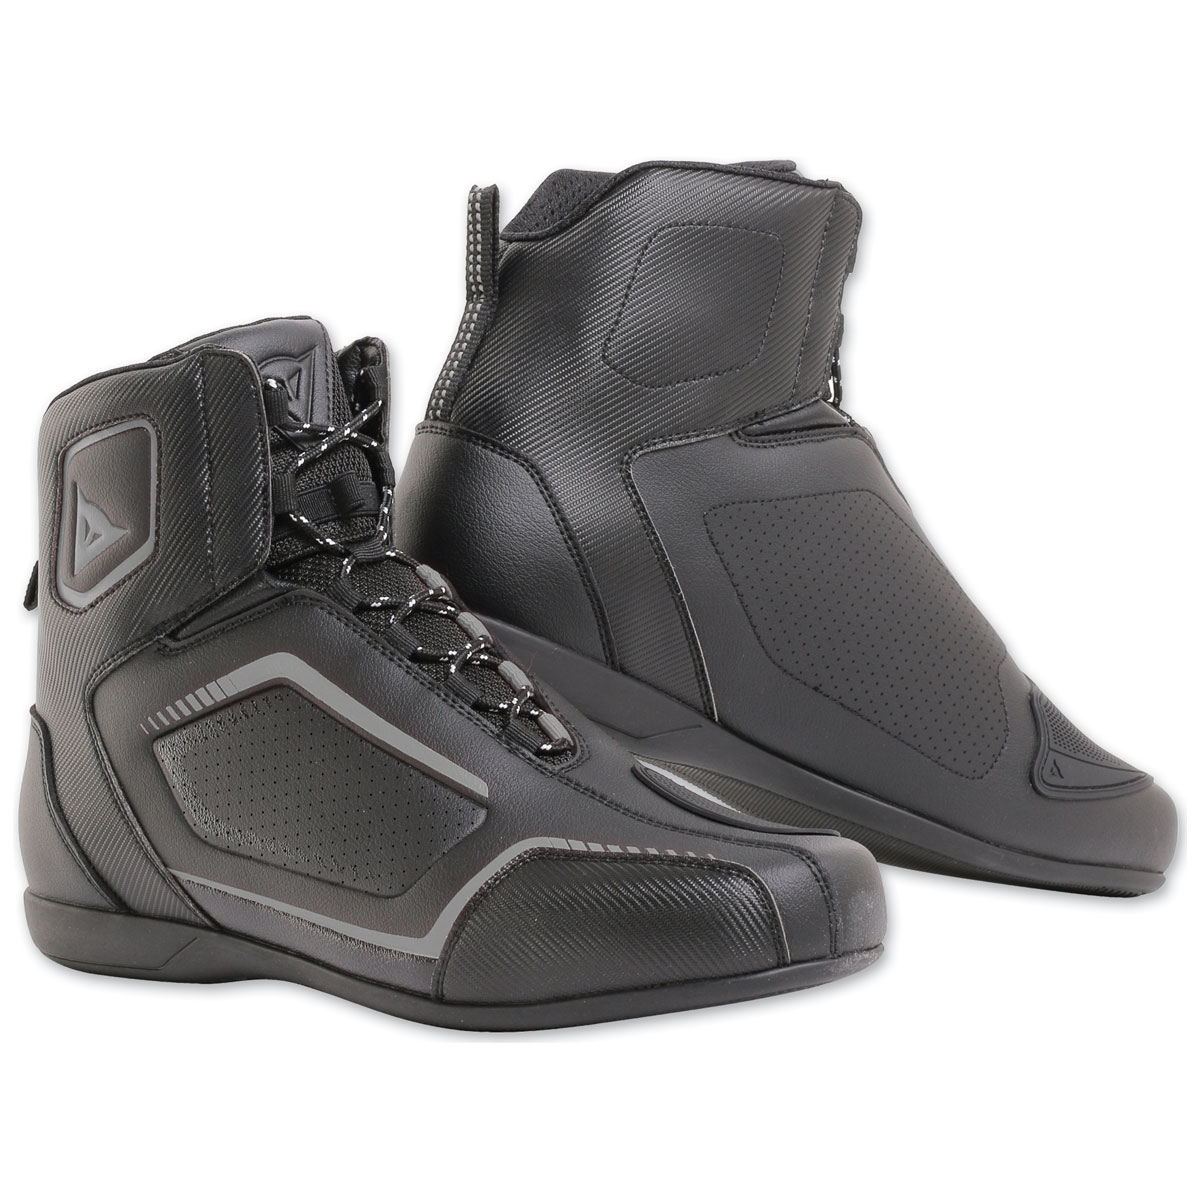 Dainese Men's Raptors Air Black/Anthracite Shoes